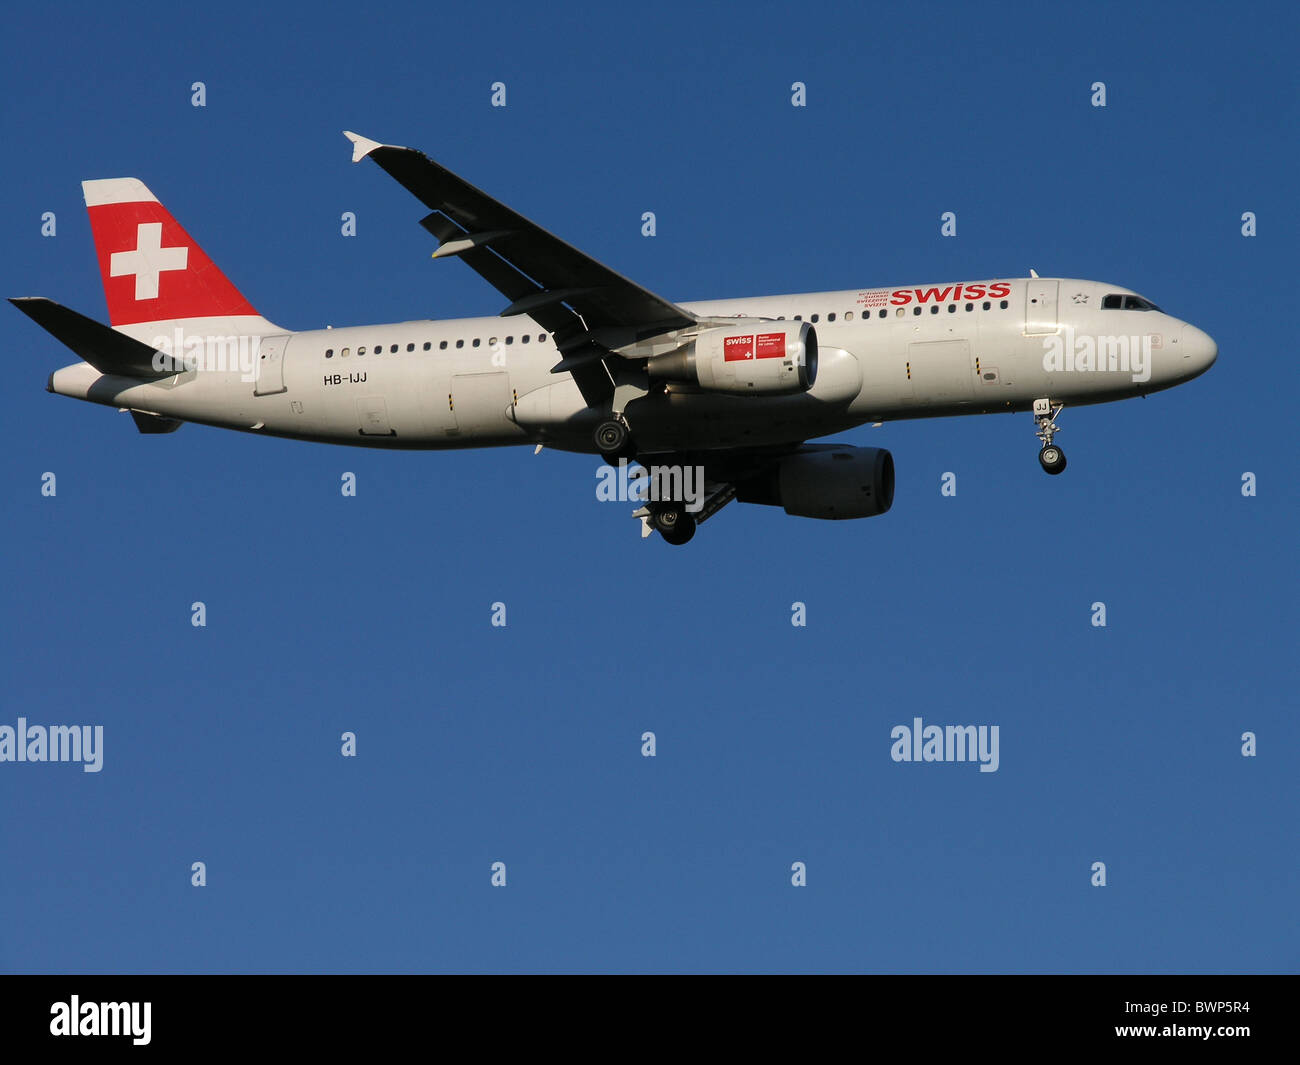 Airbus A320 Swiss International Air Lines Flying Jet Airplane Plane Aircraft Sky Travel Traveling - Stock Image